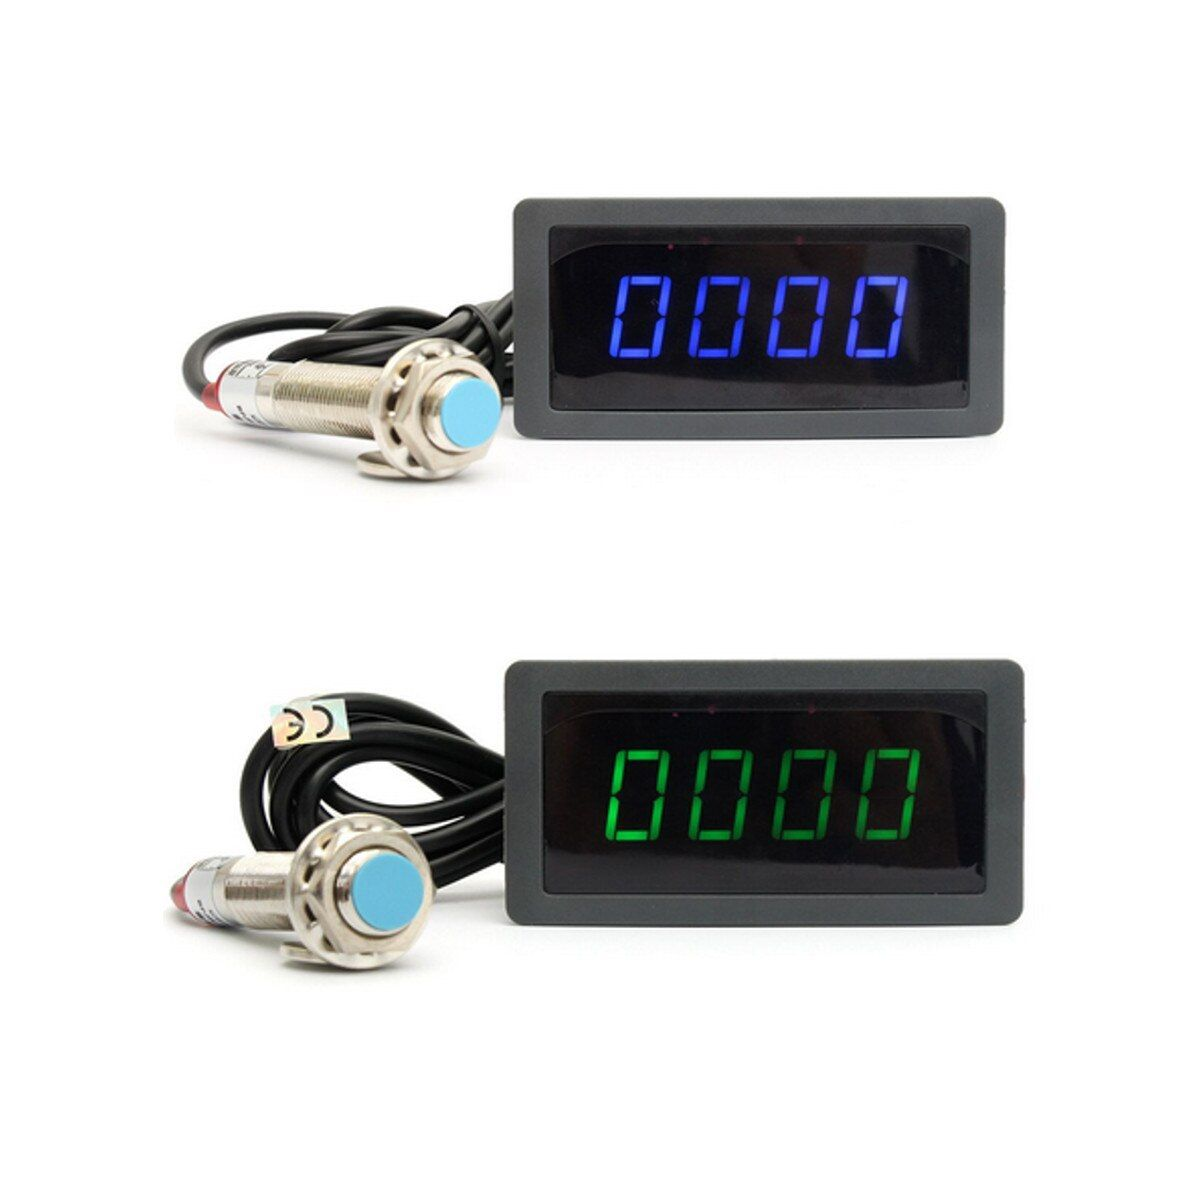 Blue Green 4 Digital LED Tachometer RPM Speed Meter+Proximity Switch Sensor 12V Promotion